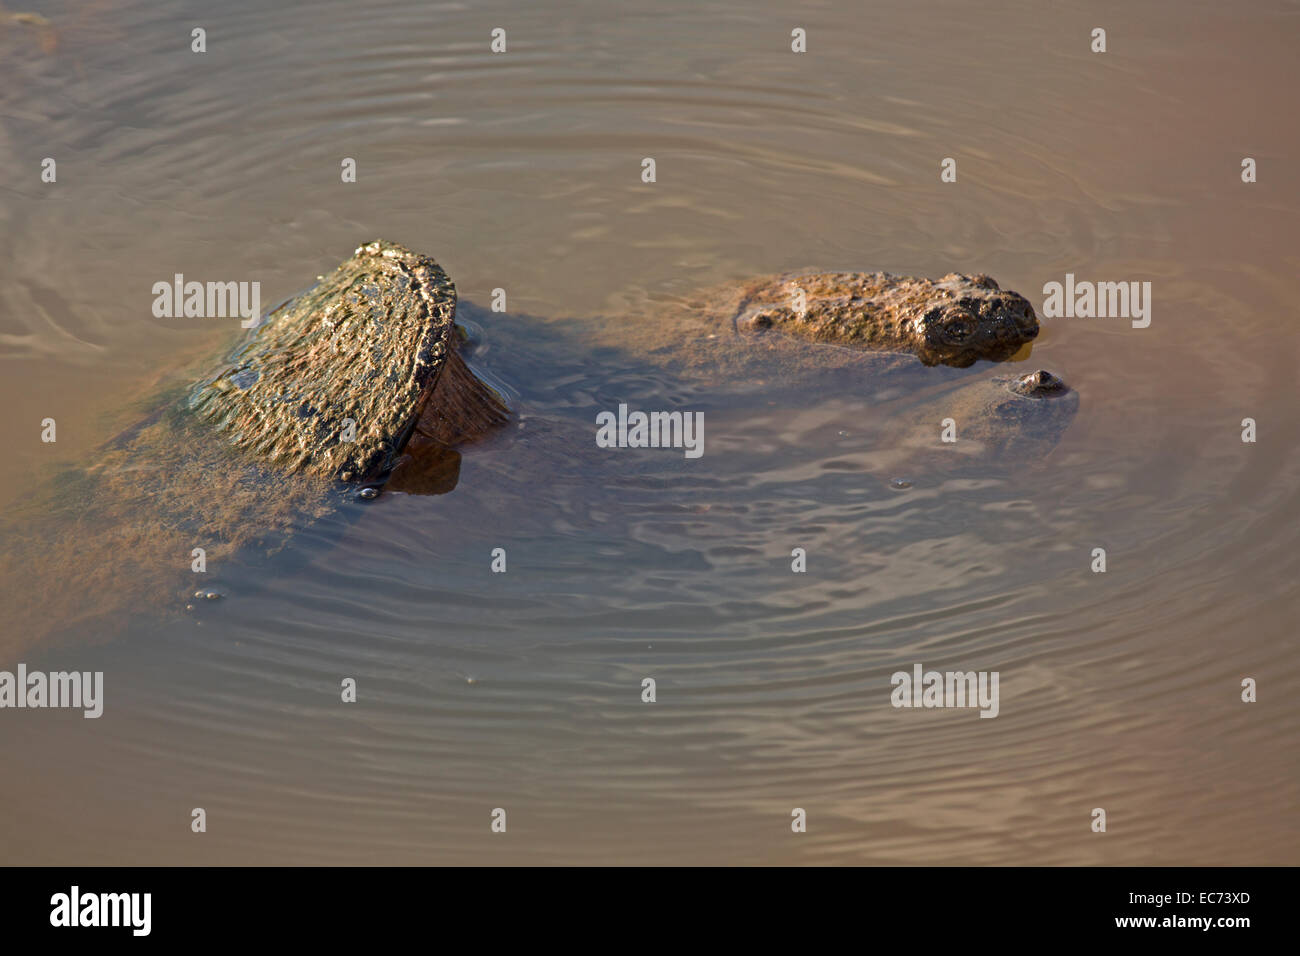 Snapping turtle, Chelydra serpentina, mating pair - Stock Image